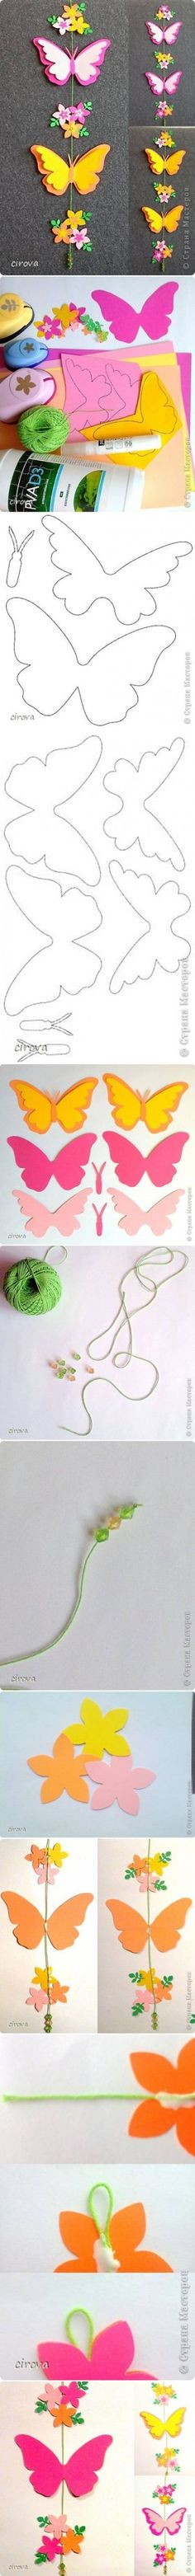 How to make Paper Butterfly Mobile step by step DIY tutorial instructions 400x5297 How to make Paper Butterfly Mobile step by step DIY tutor...